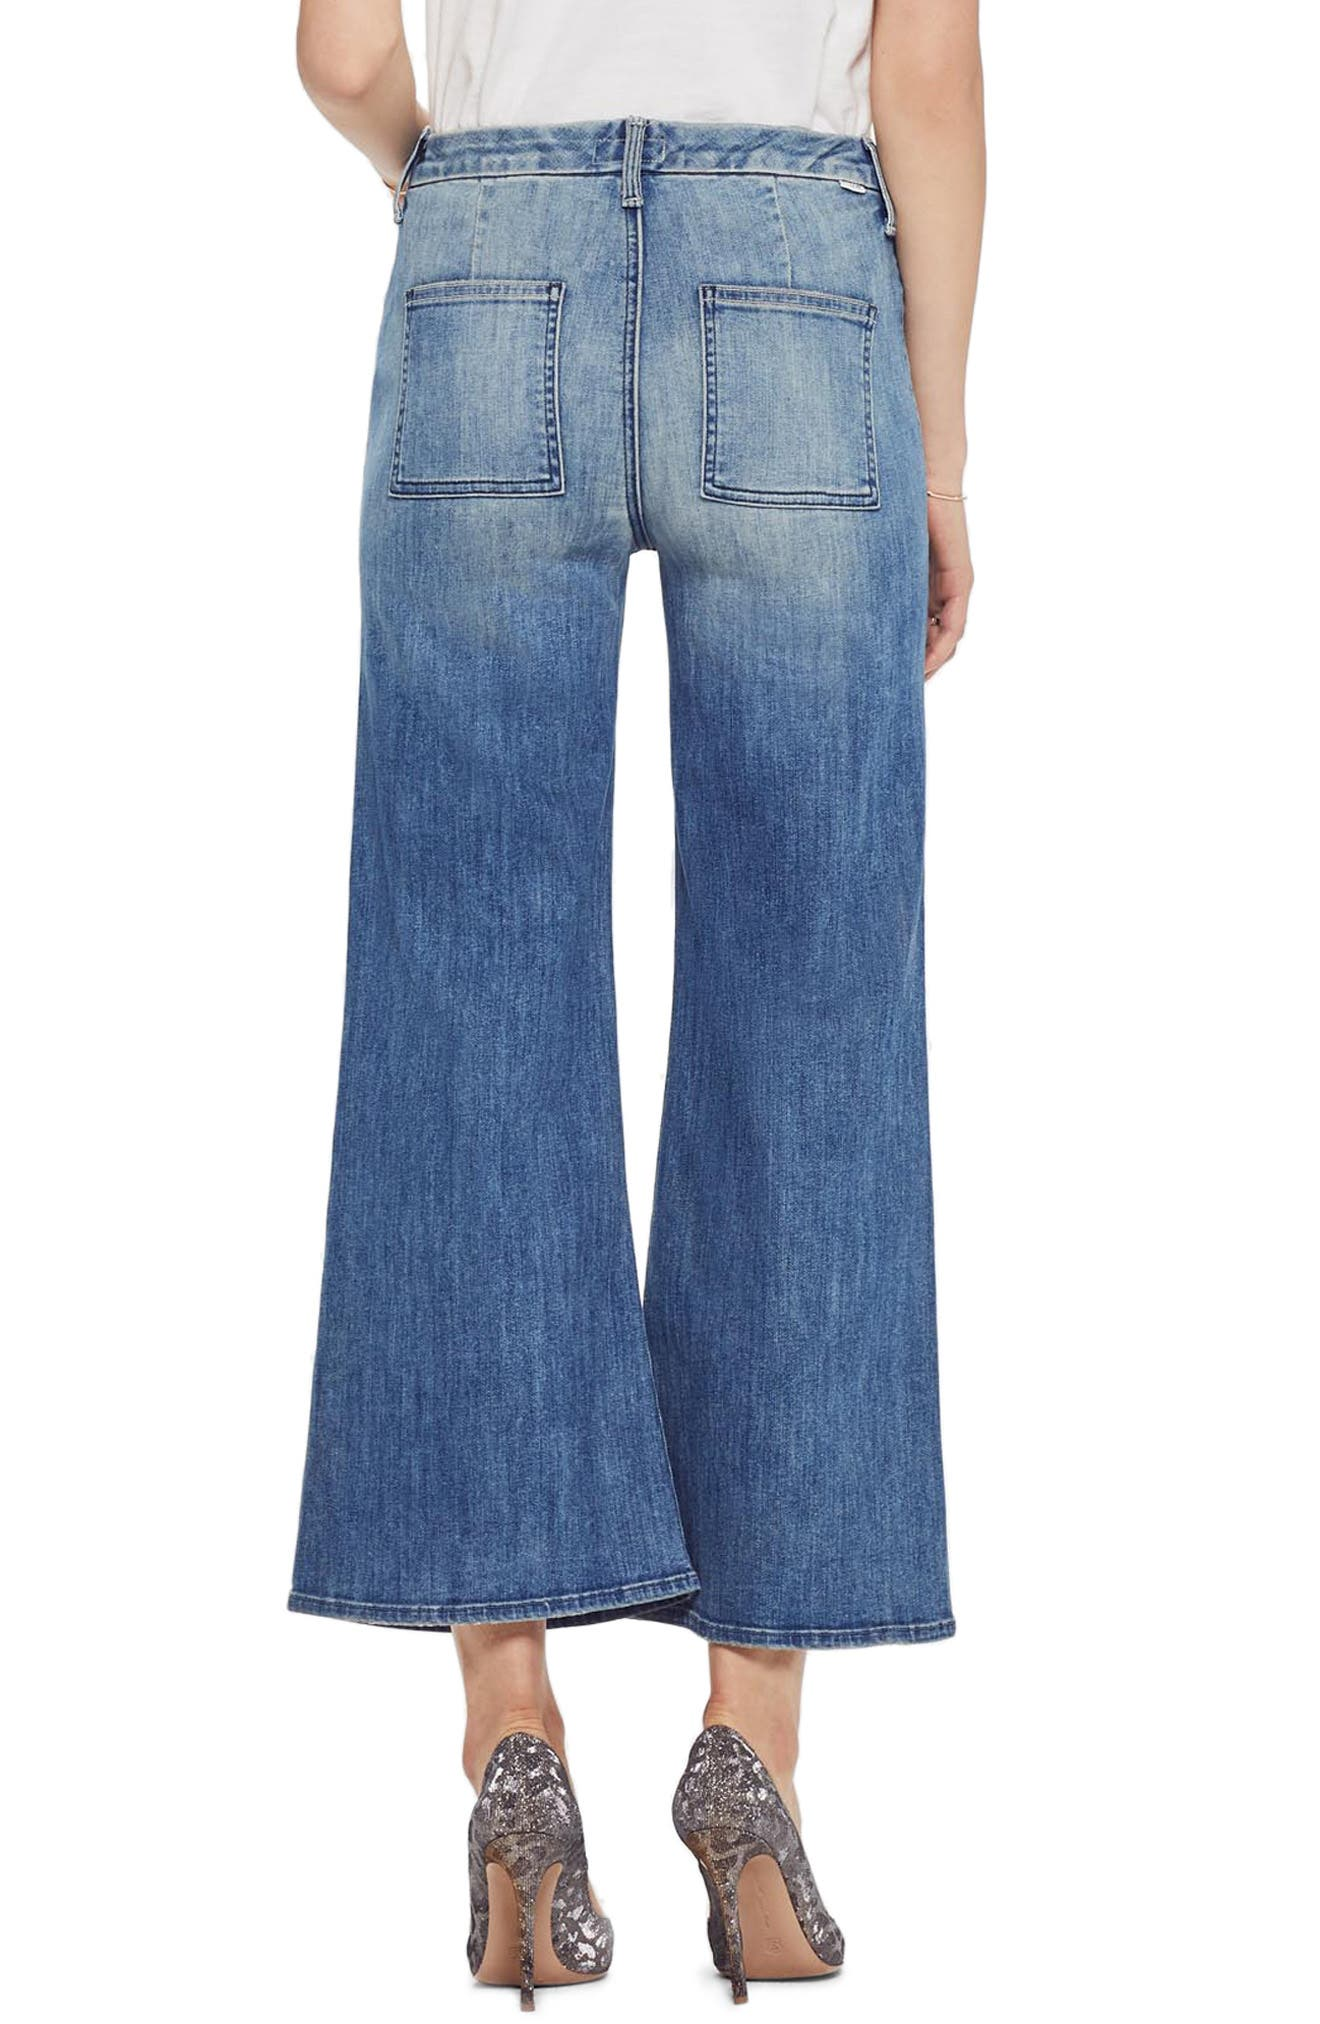 MOTHER, The Lace Up Crop Flare Jeans, Alternate thumbnail 2, color, WHERE THERES SMOKE